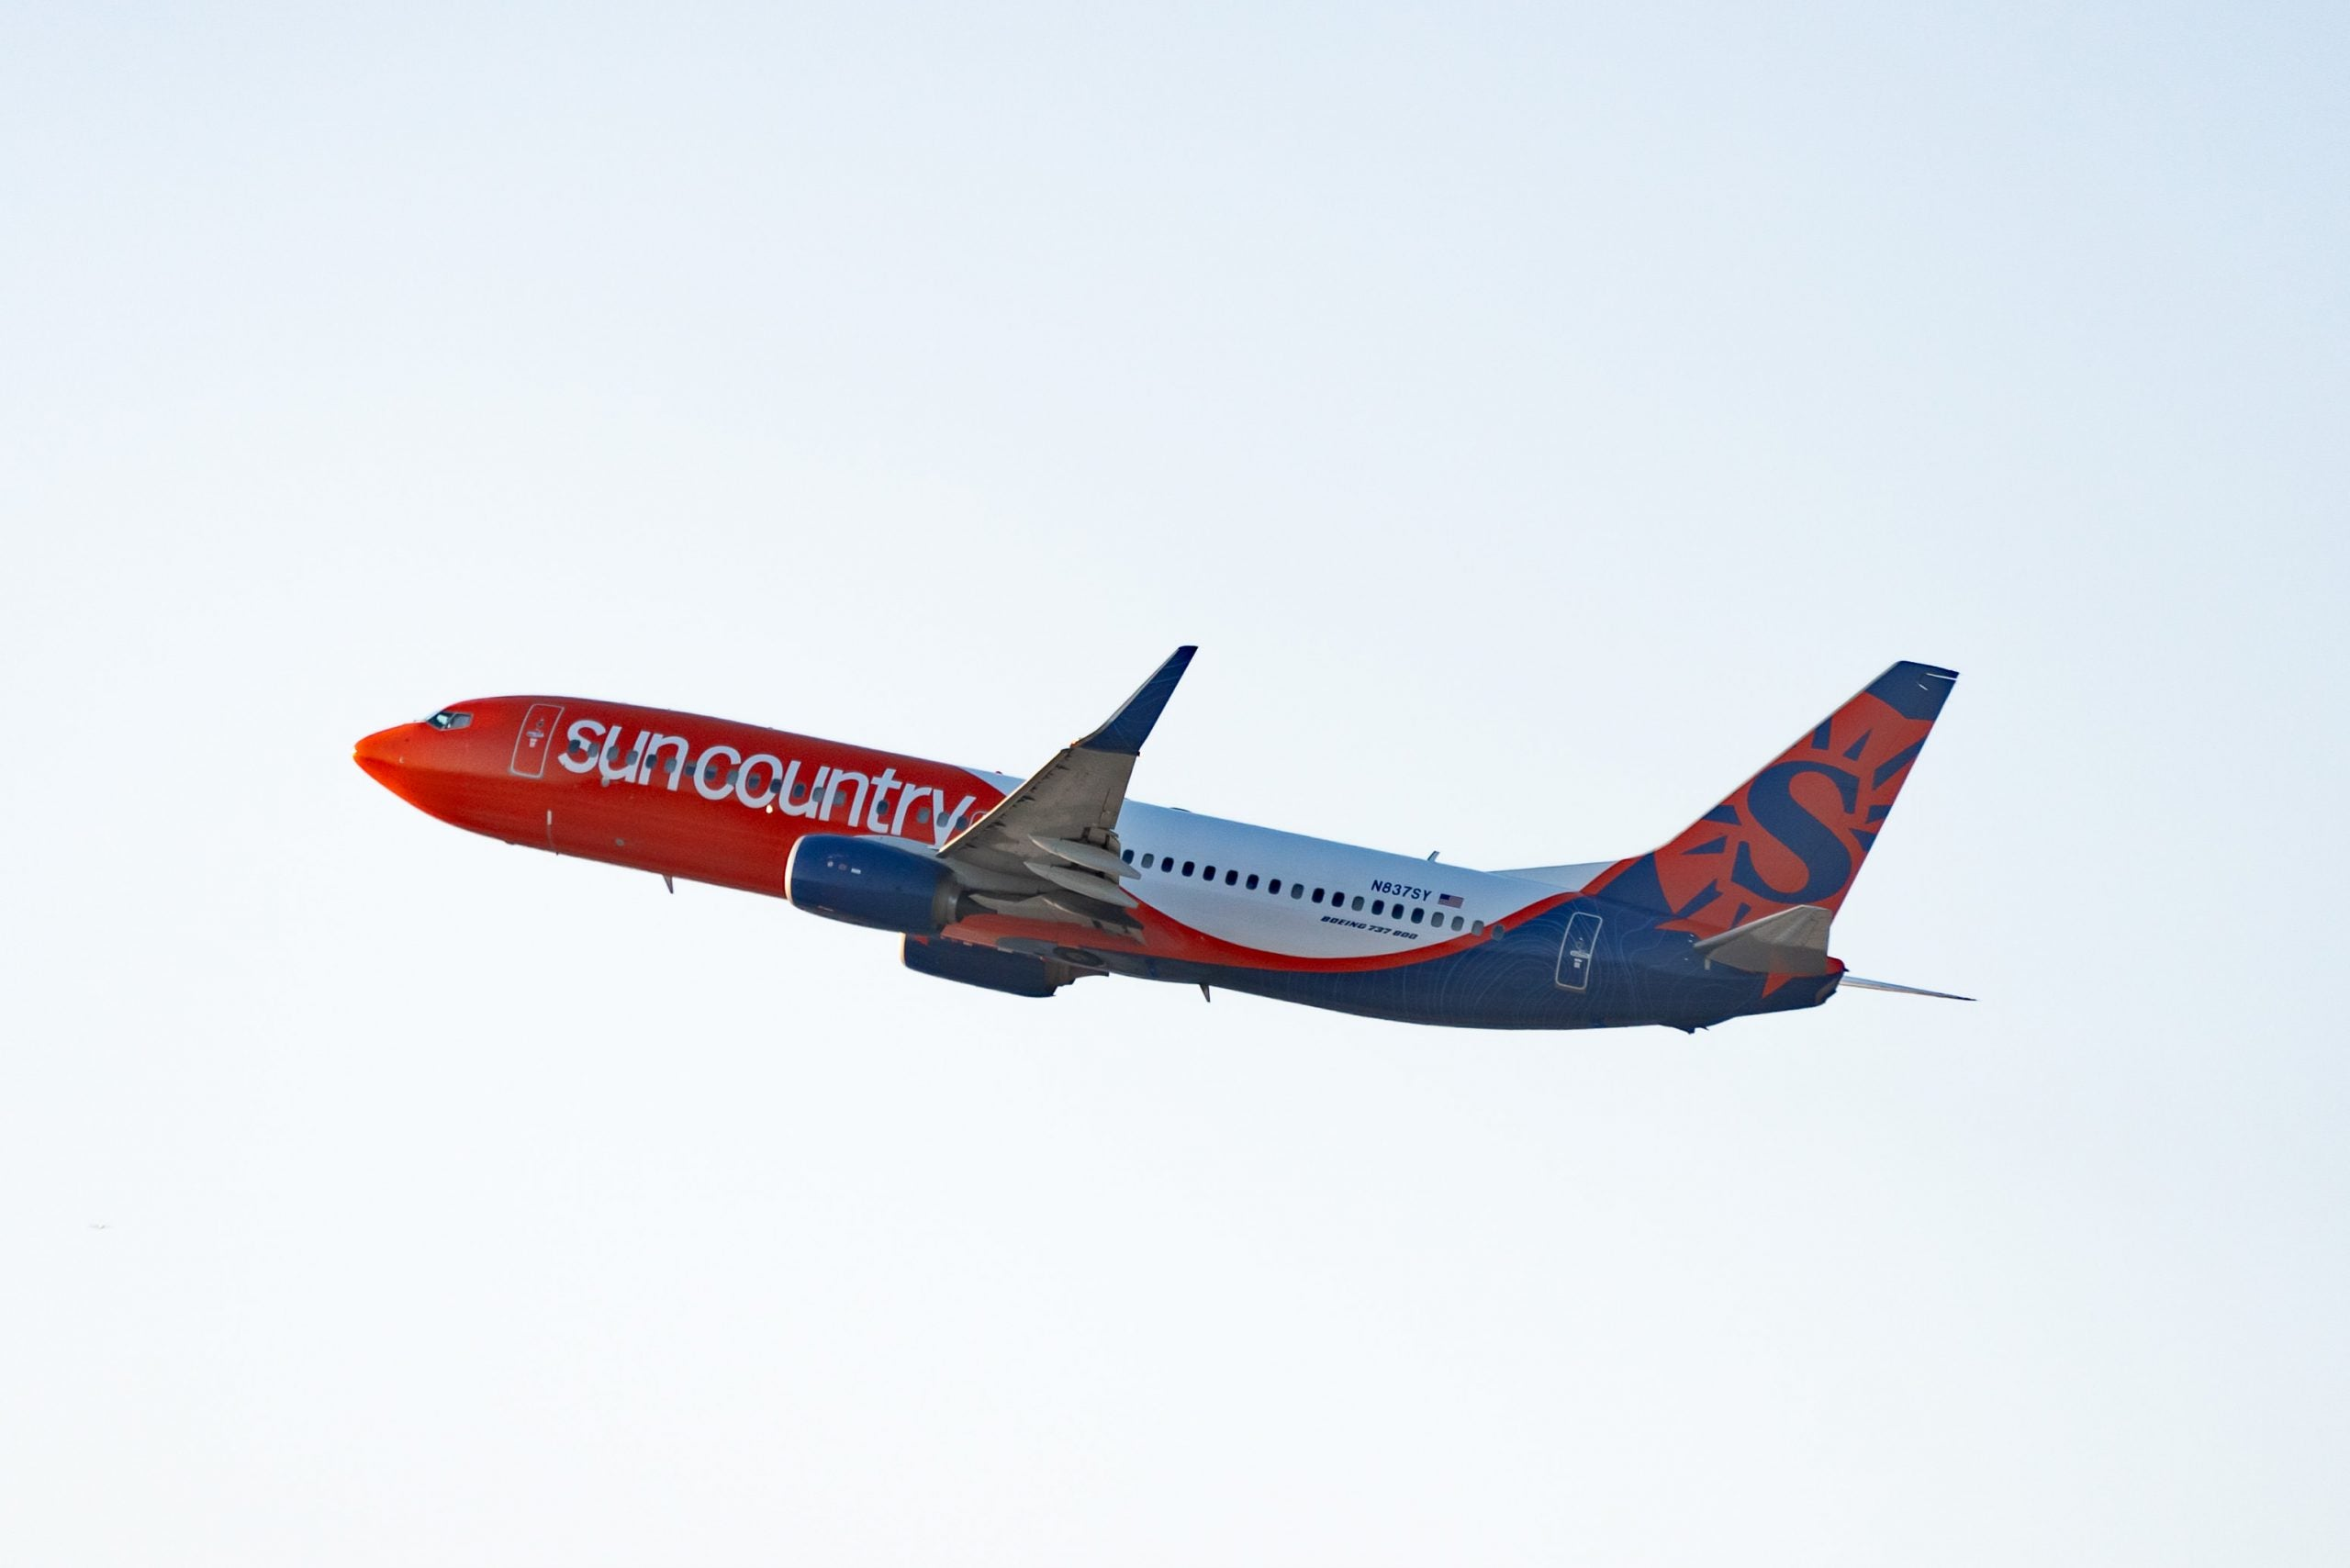 Sun Country announces 18 nonstop routes, including 9 new destinations